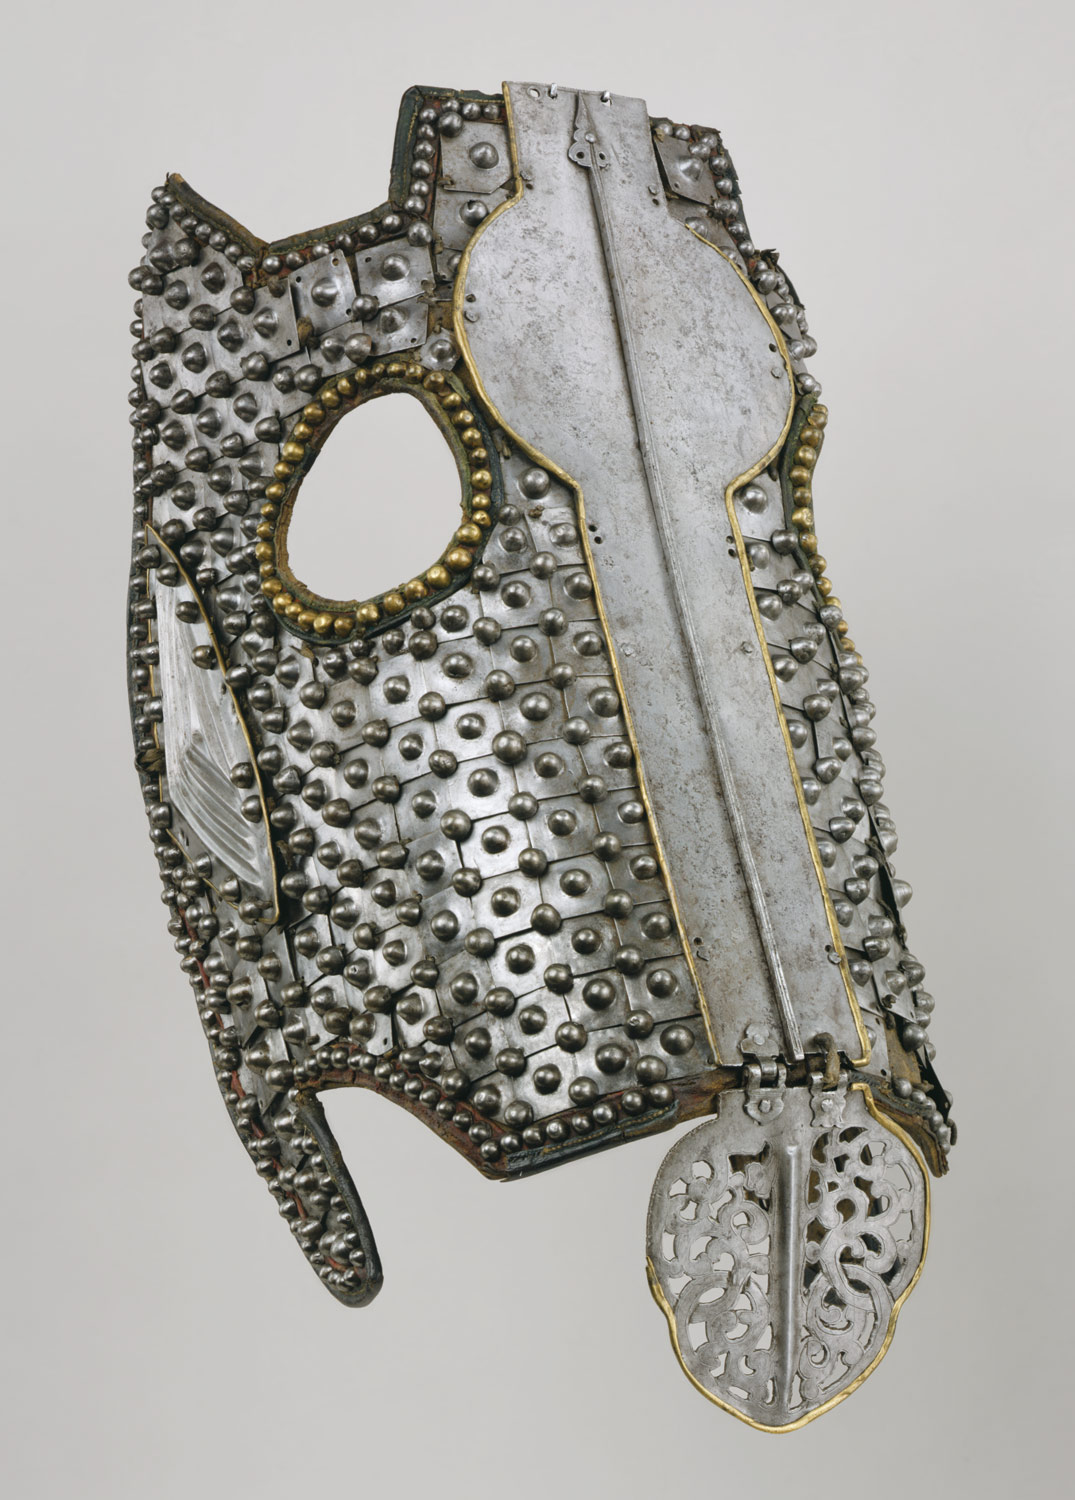 Shaffron (Horses Head Defense)